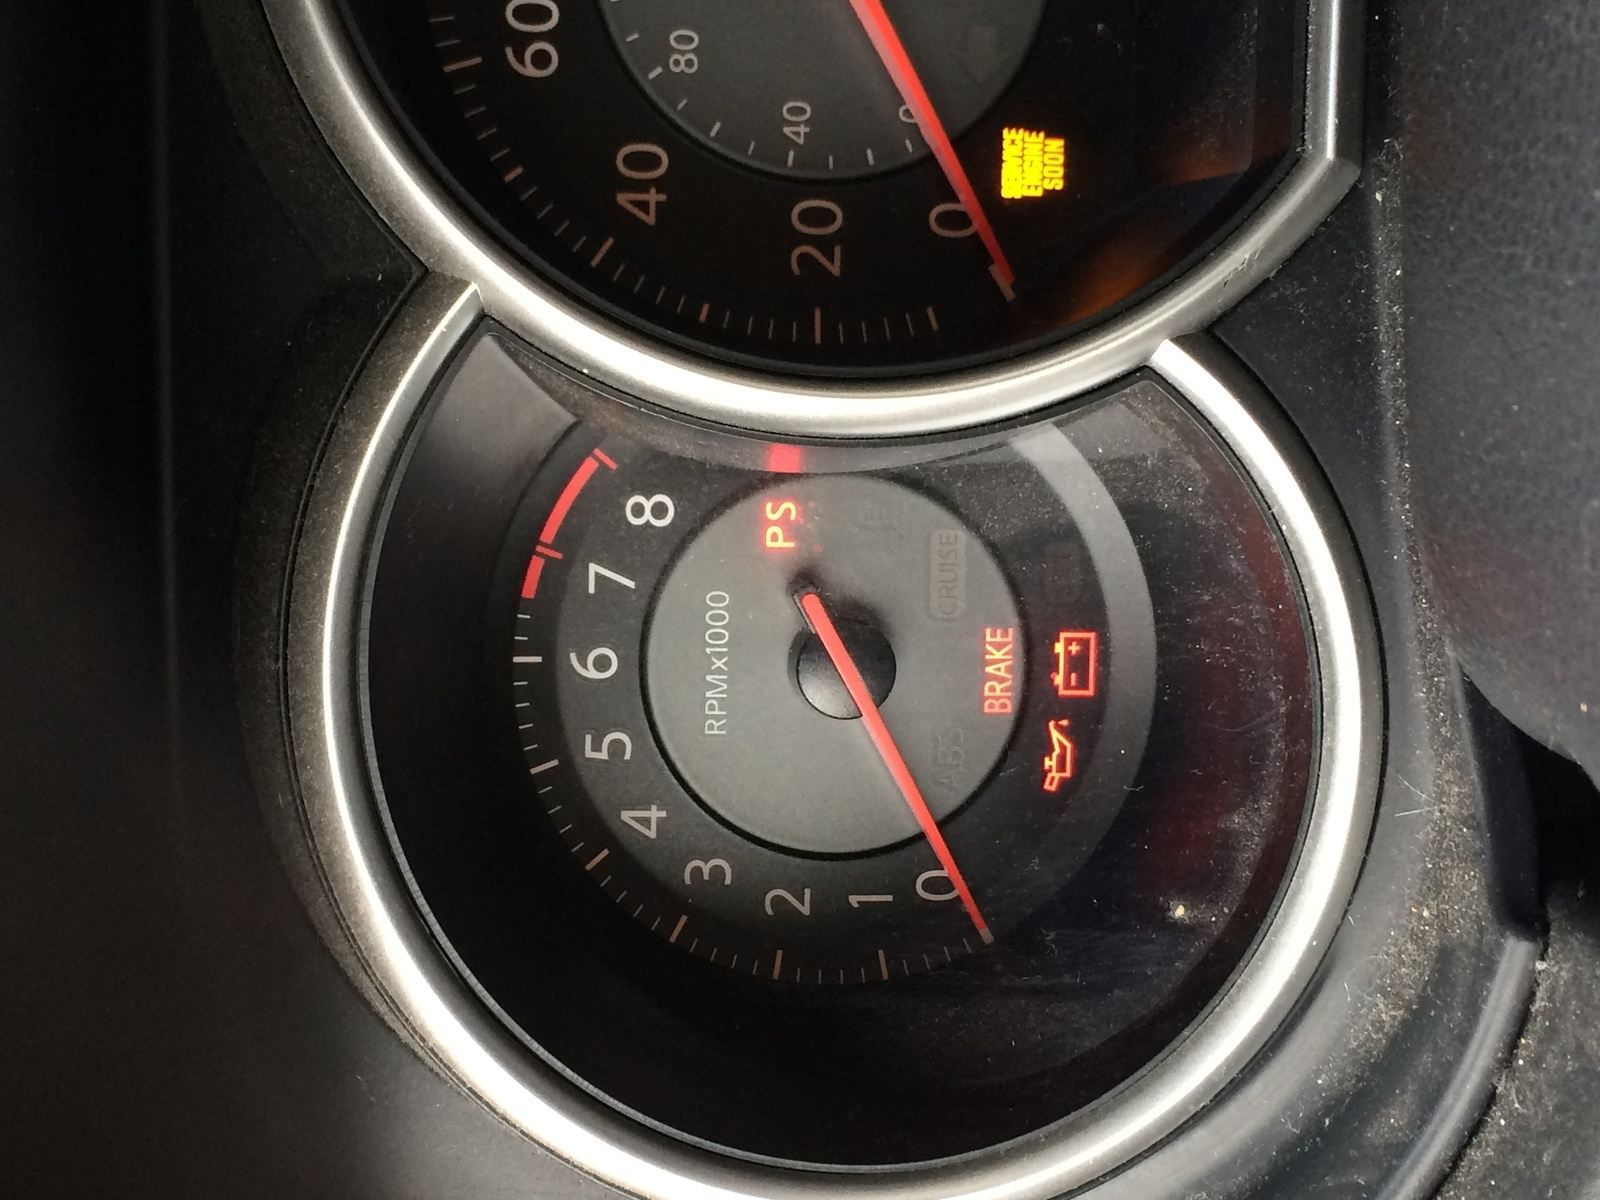 Nissan Versa - Car stopped at red light - suddenly freezes up, lights come  on, can't accelerate.